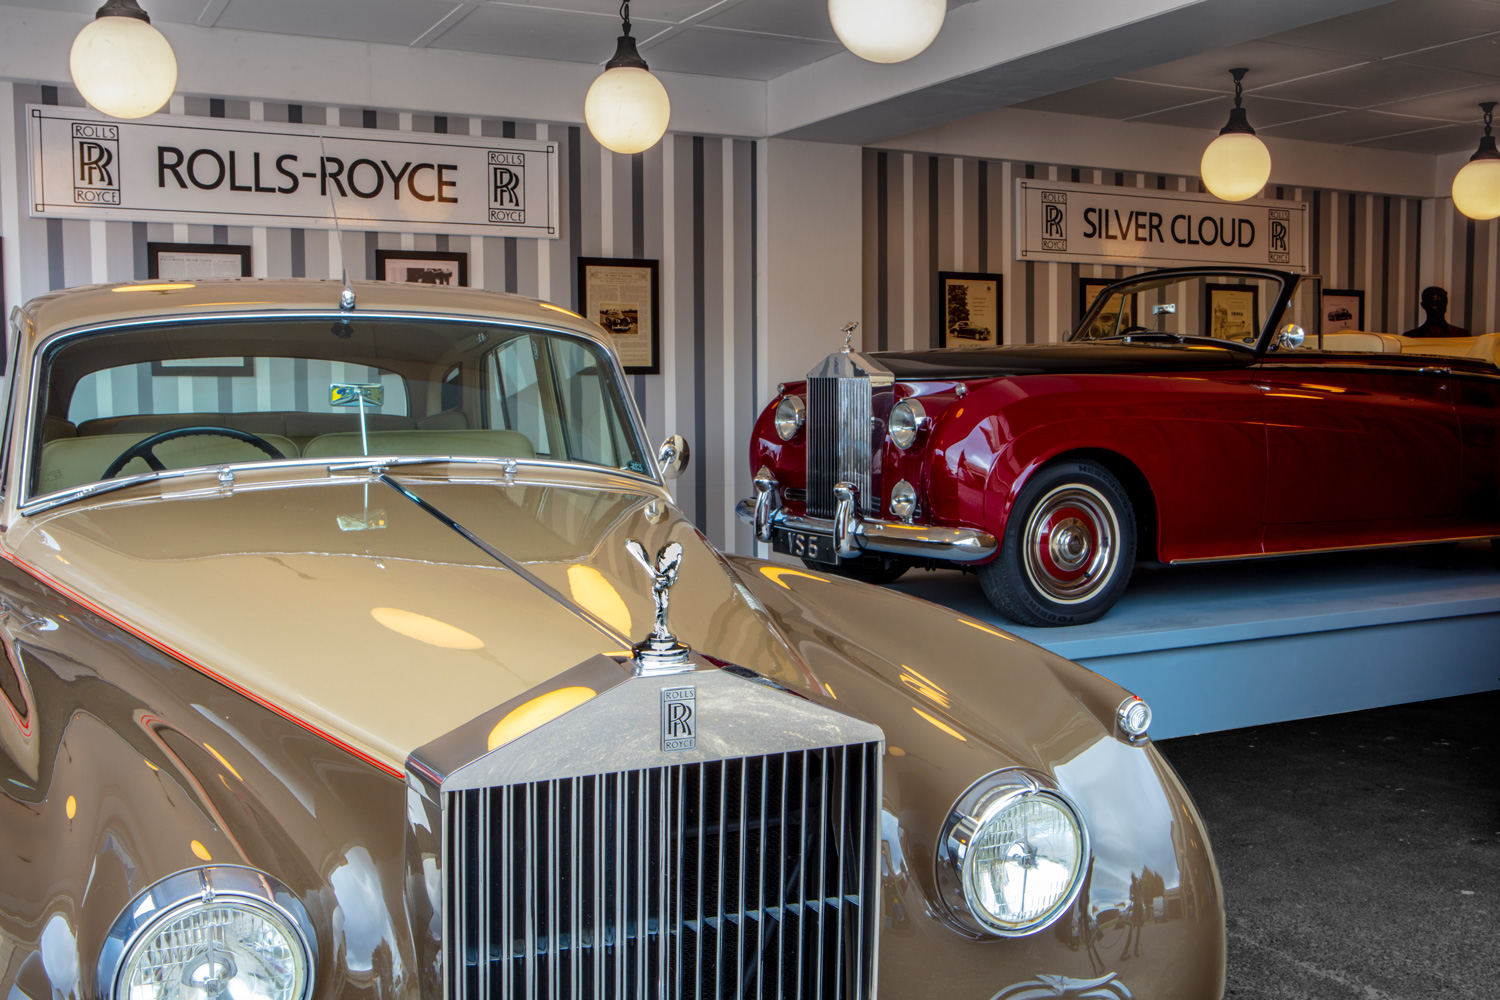 Rolls-Rpyce recreates Historic Motor Show at 2019 Goodwood Revival